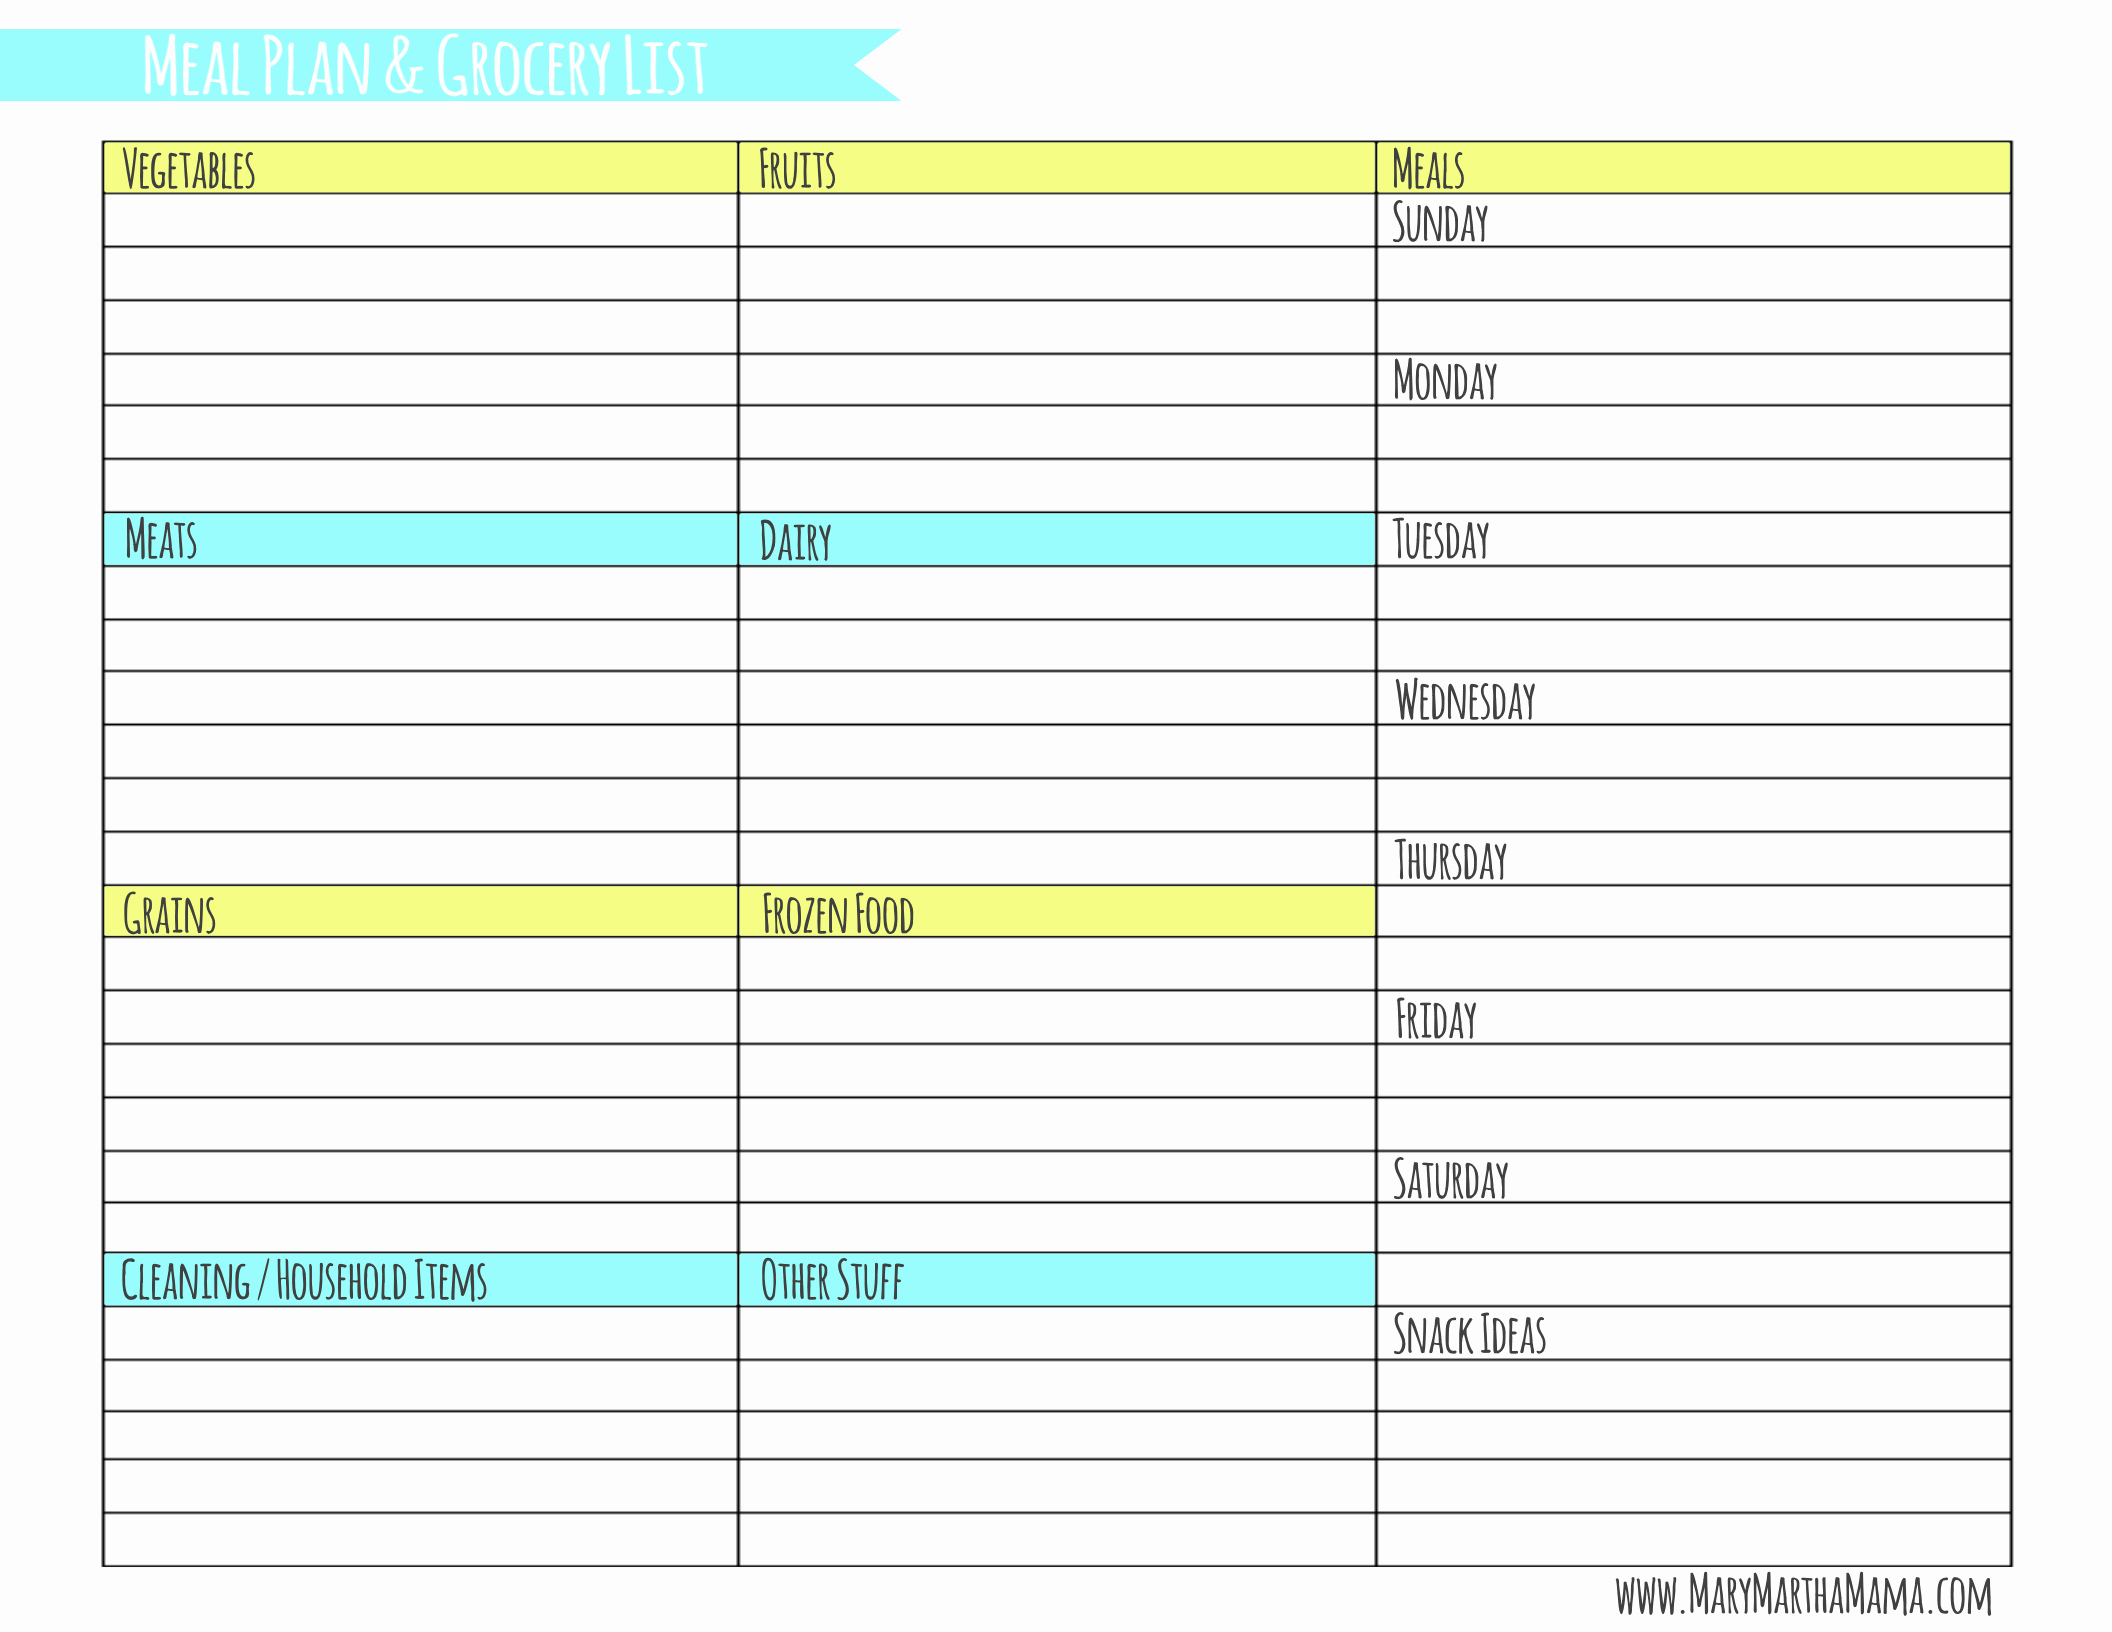 Weekly Meal Planning Template Unique Weekly Meal Planner Template with Grocery List – Mary